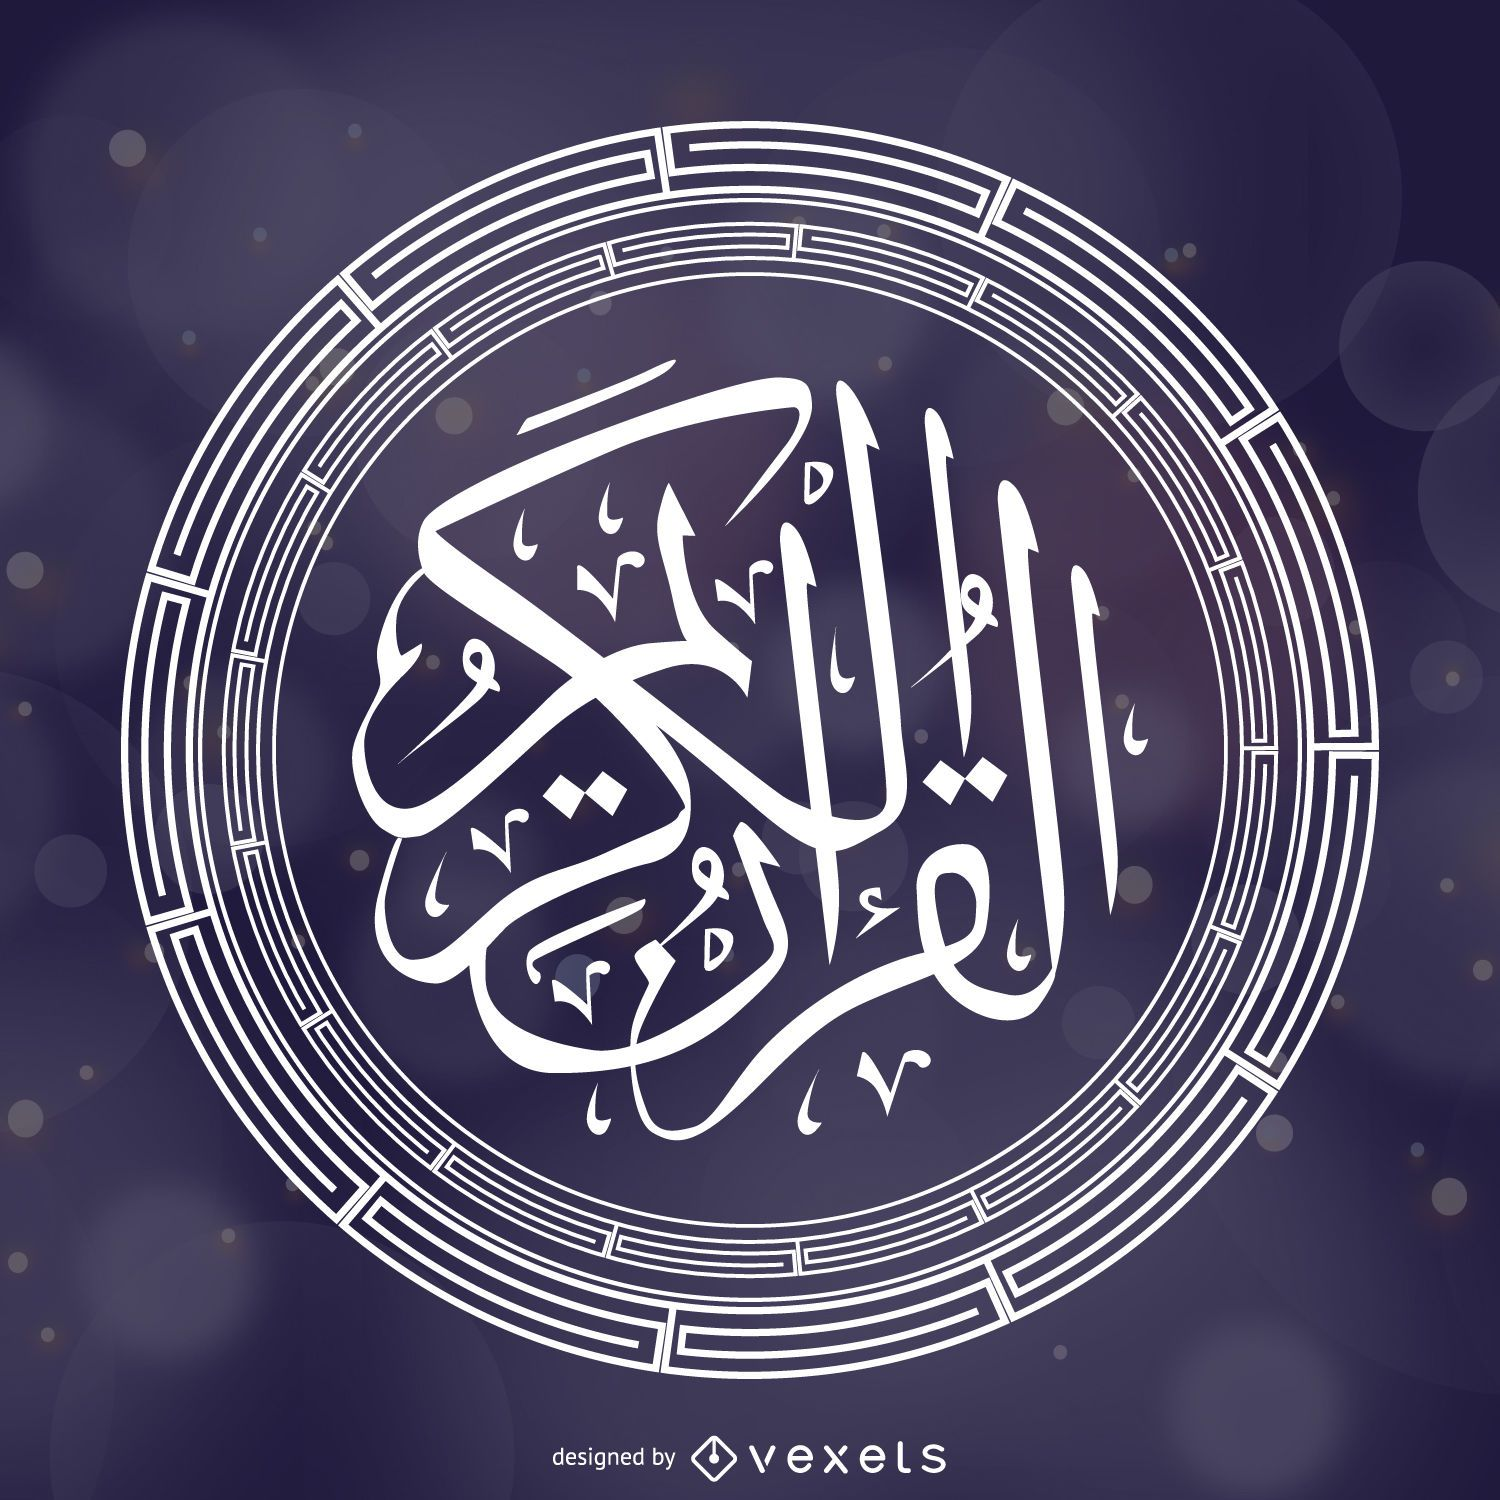 Quran Islamic Circle Ornament Vector Download